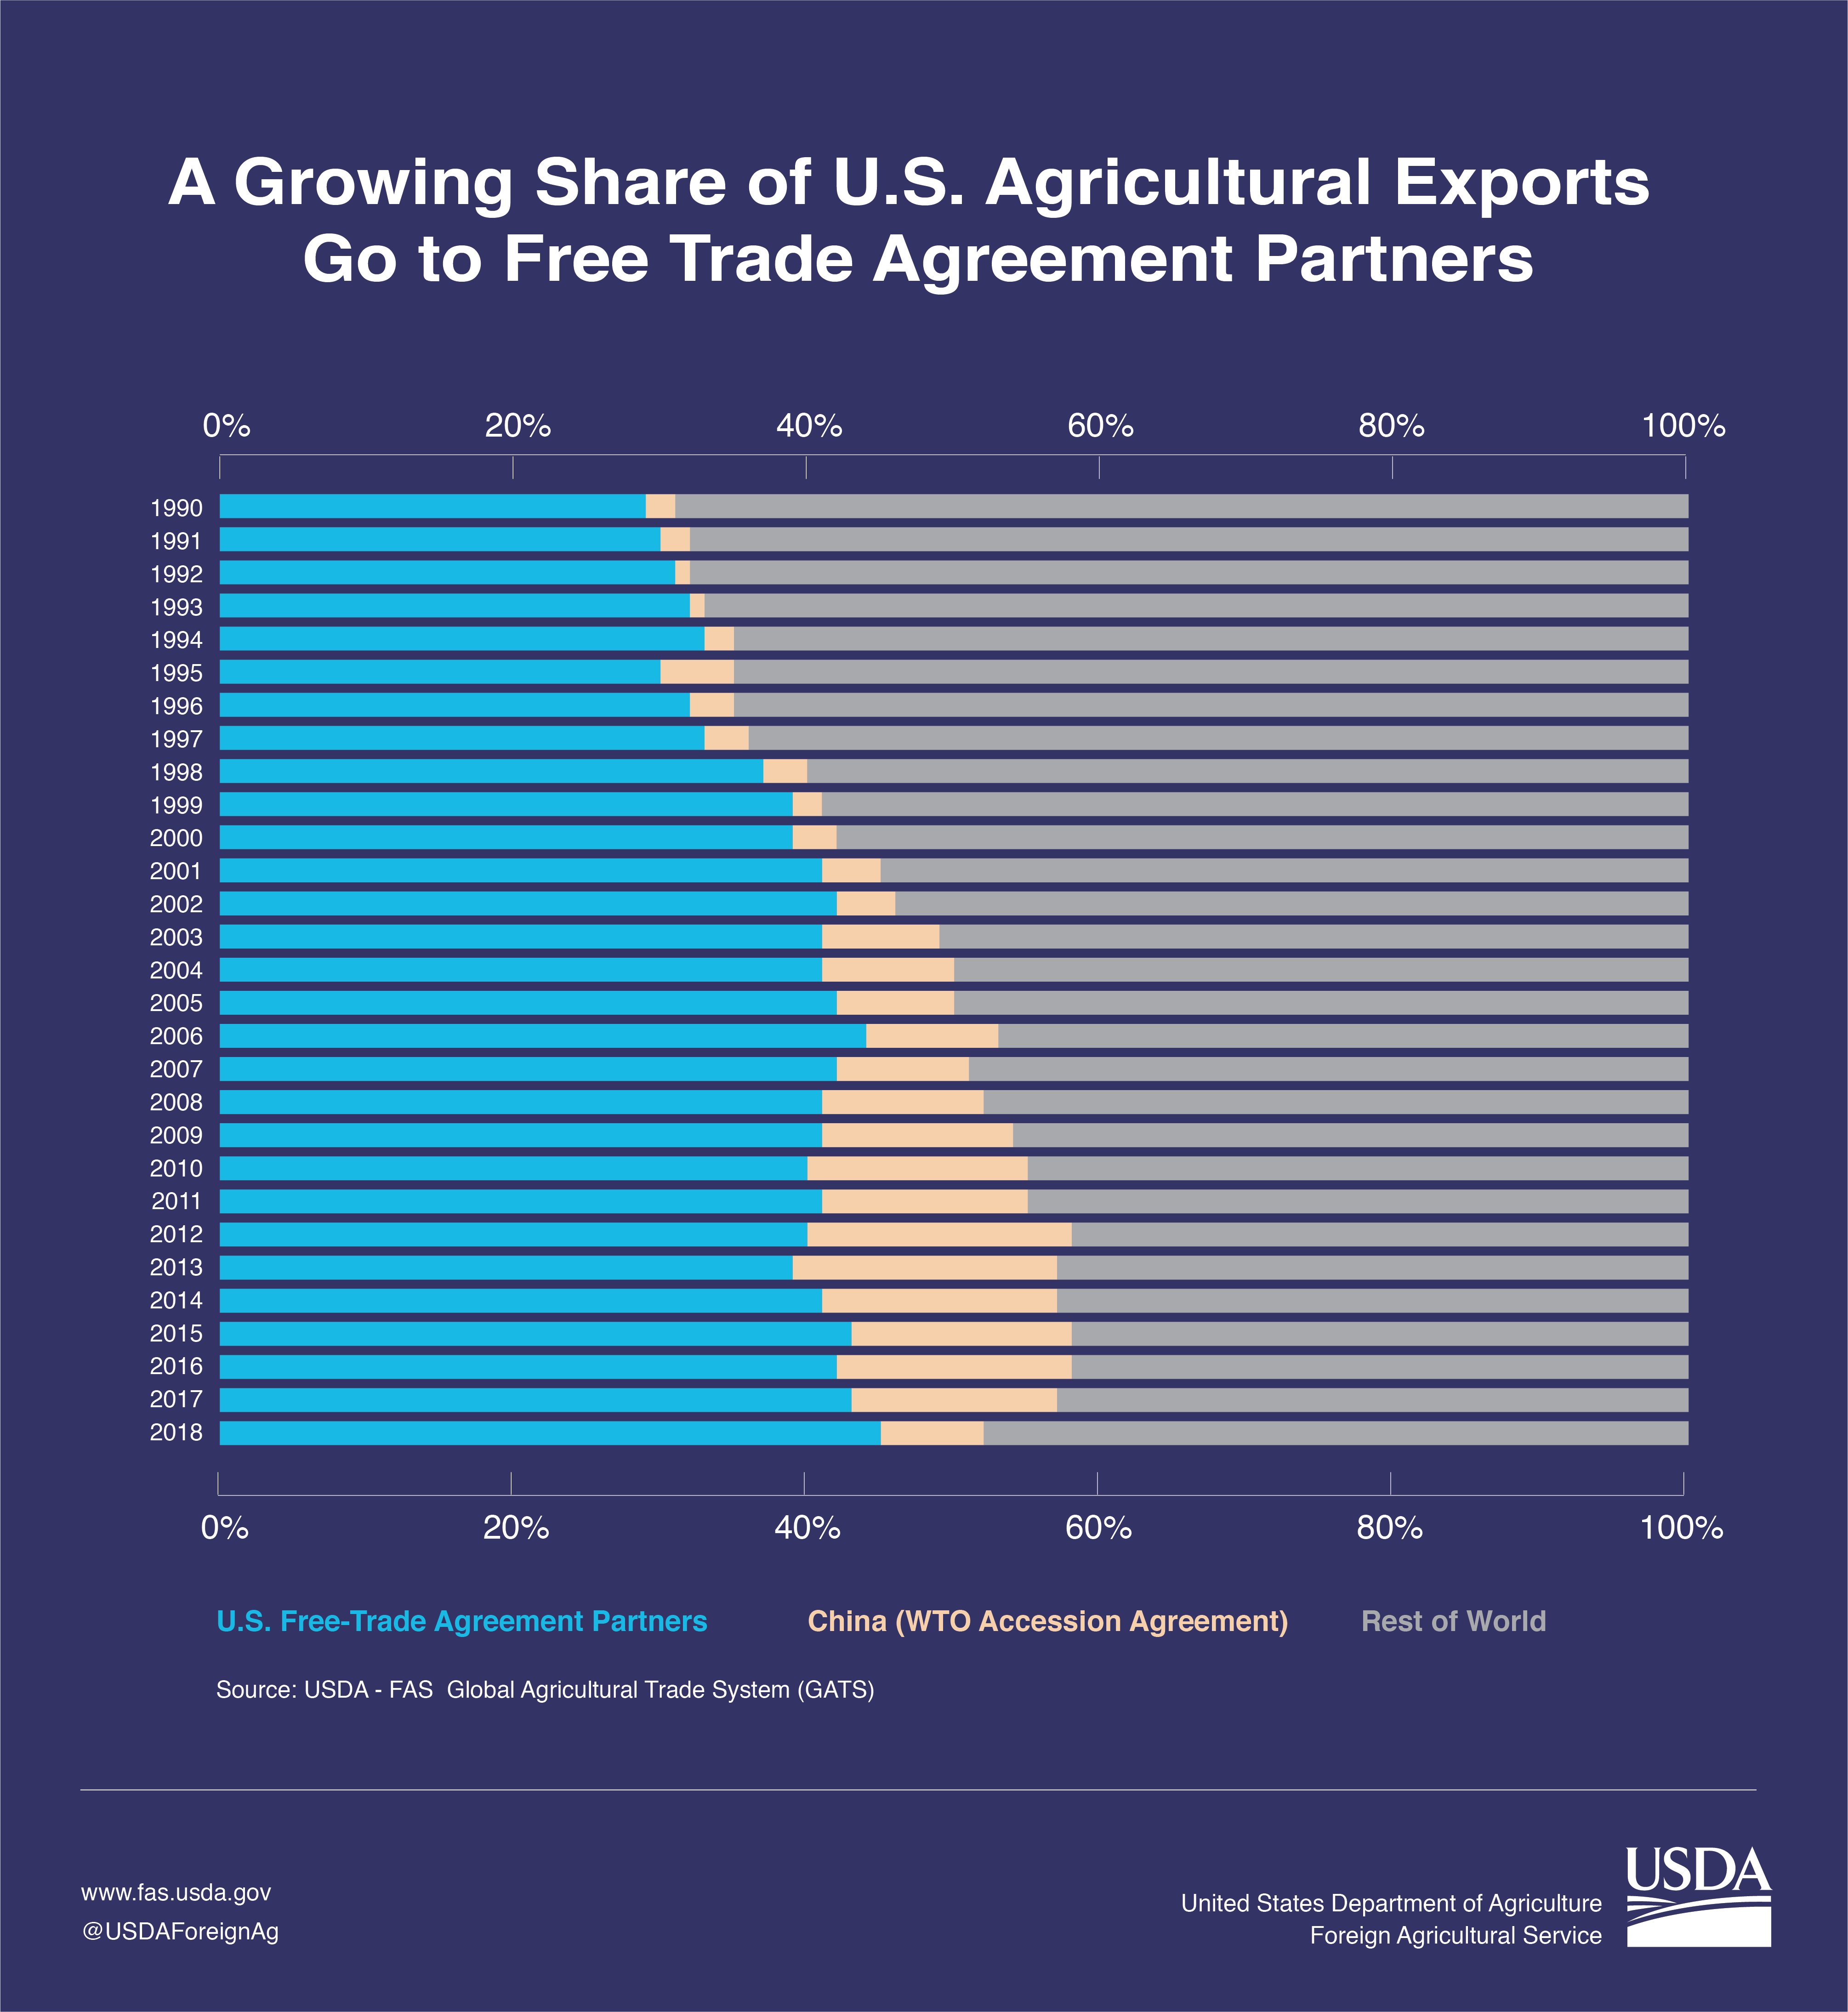 Stacked column chart illustrating the growth of U.S. agricultural exports to FTA partners verses a decrease in exports to non-FTA partners.